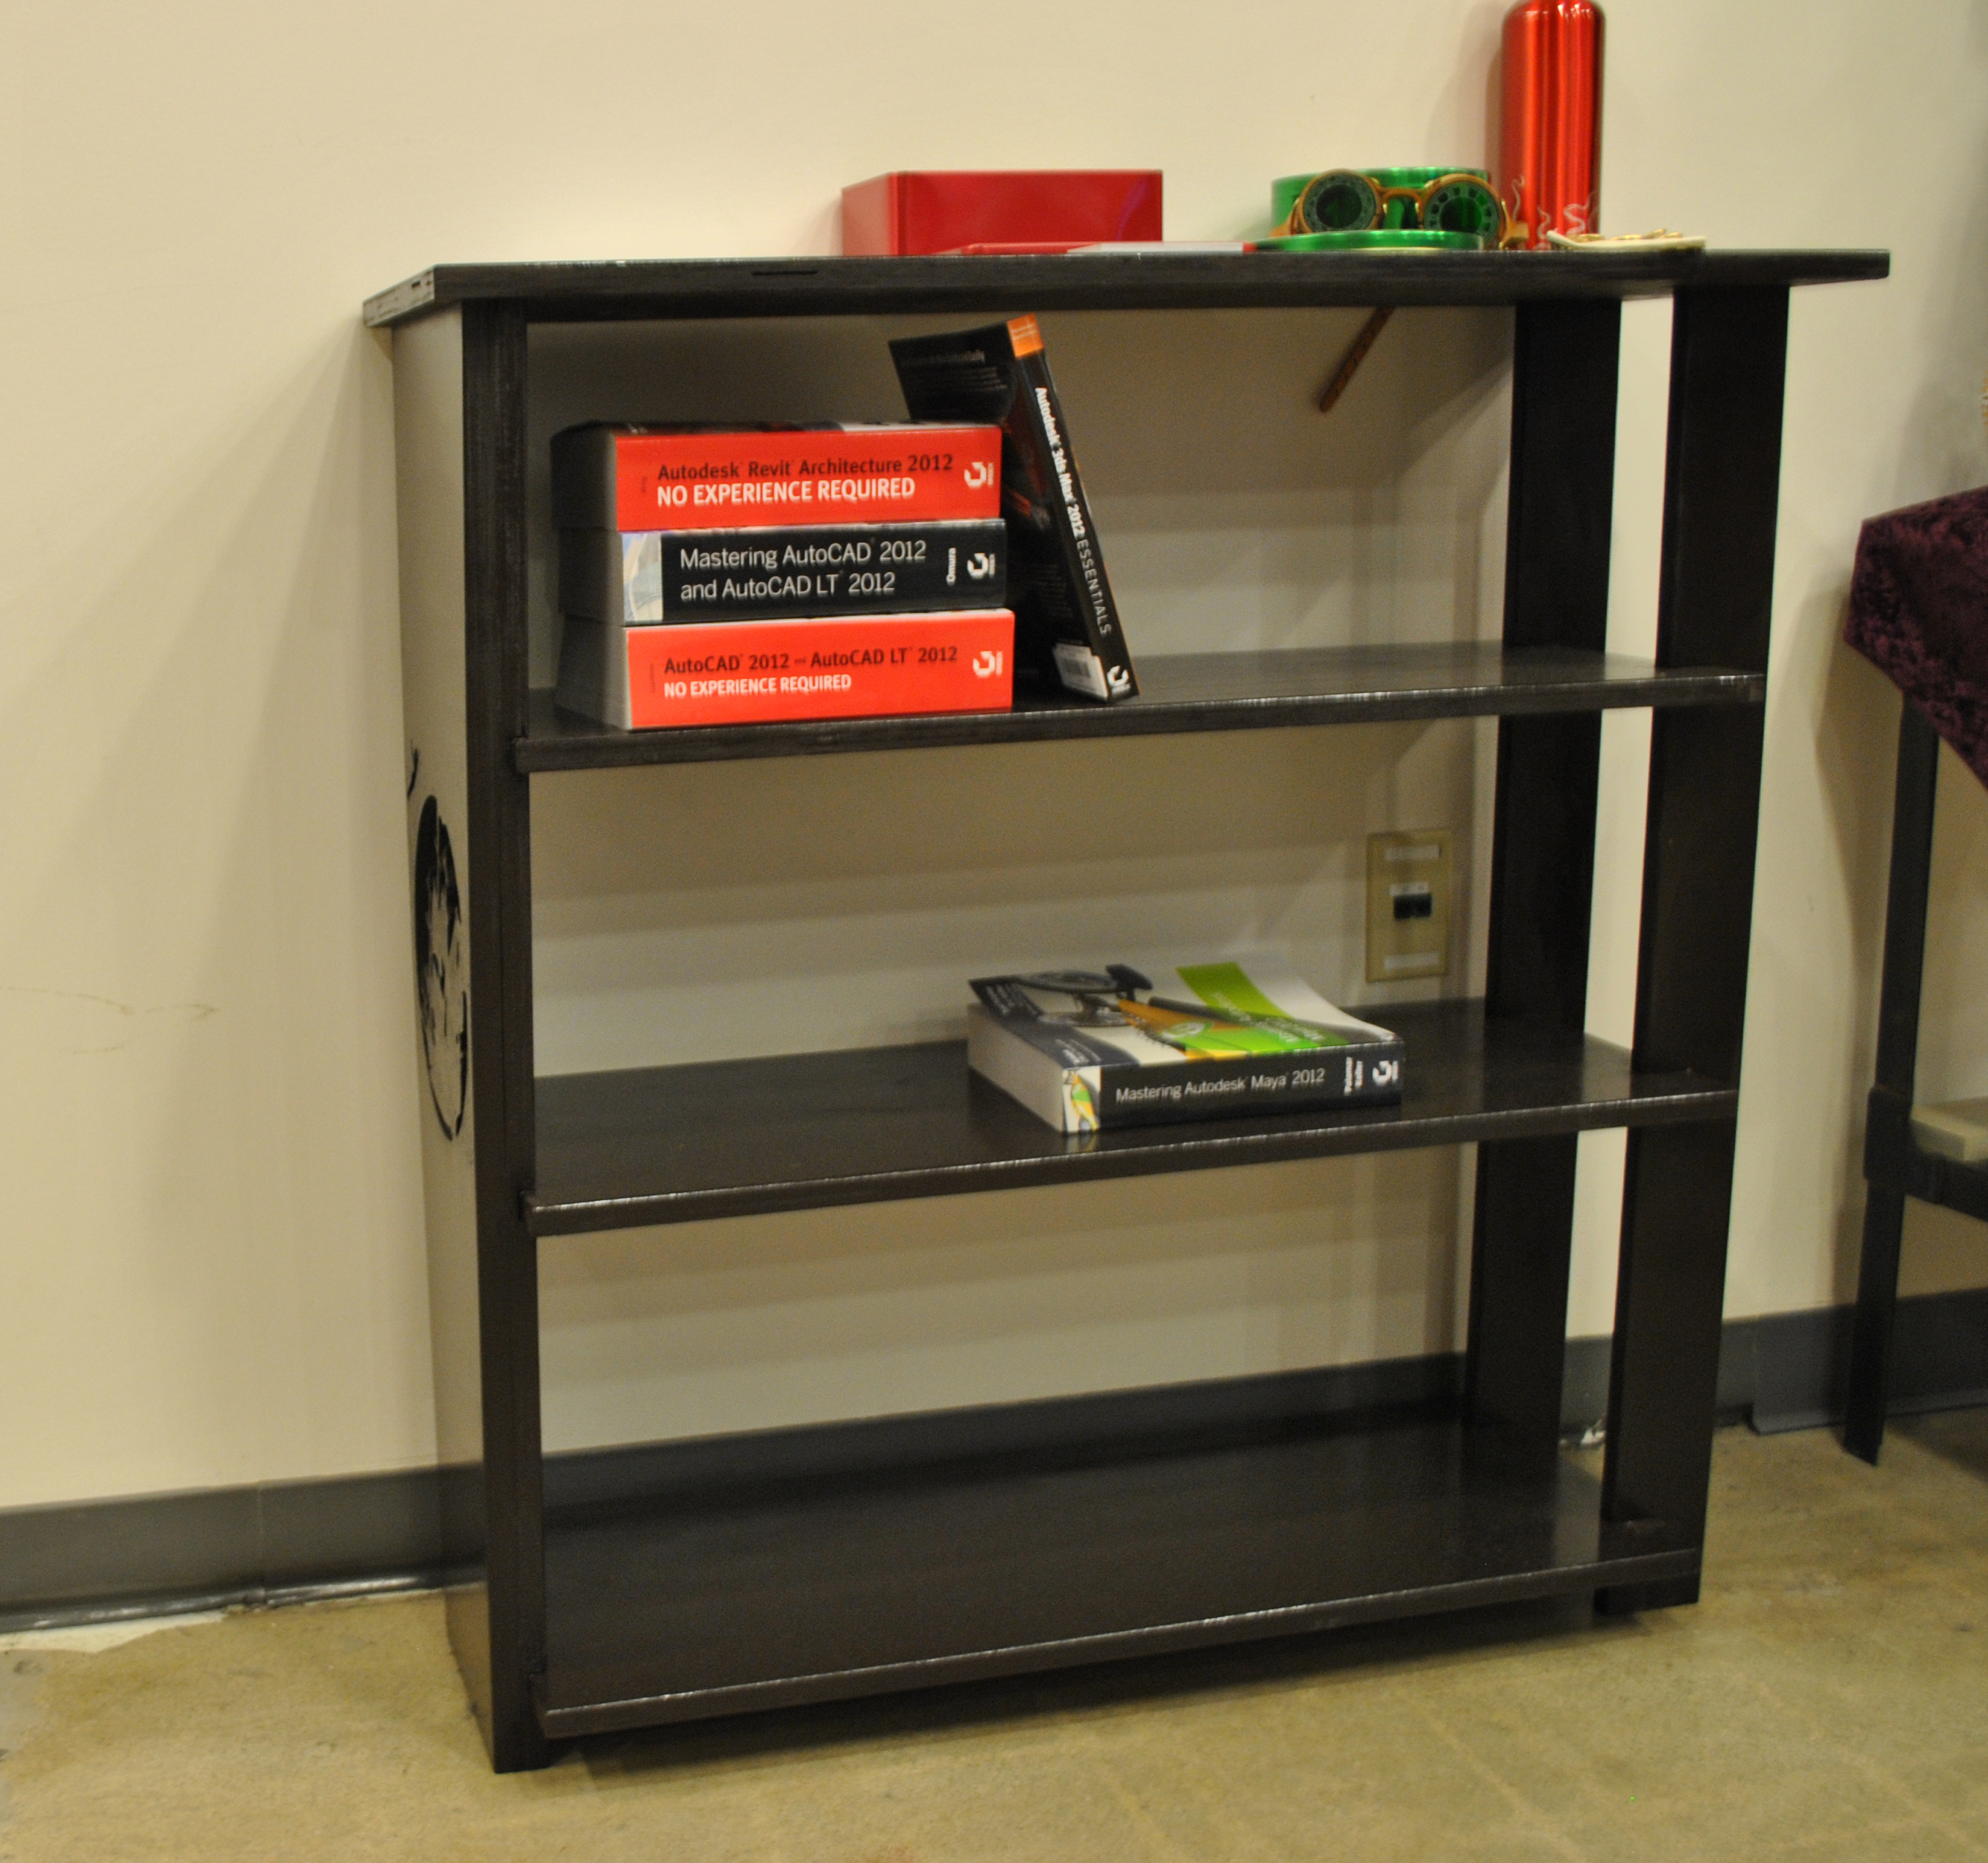 Picture of Simple Bookshelf From TechShop